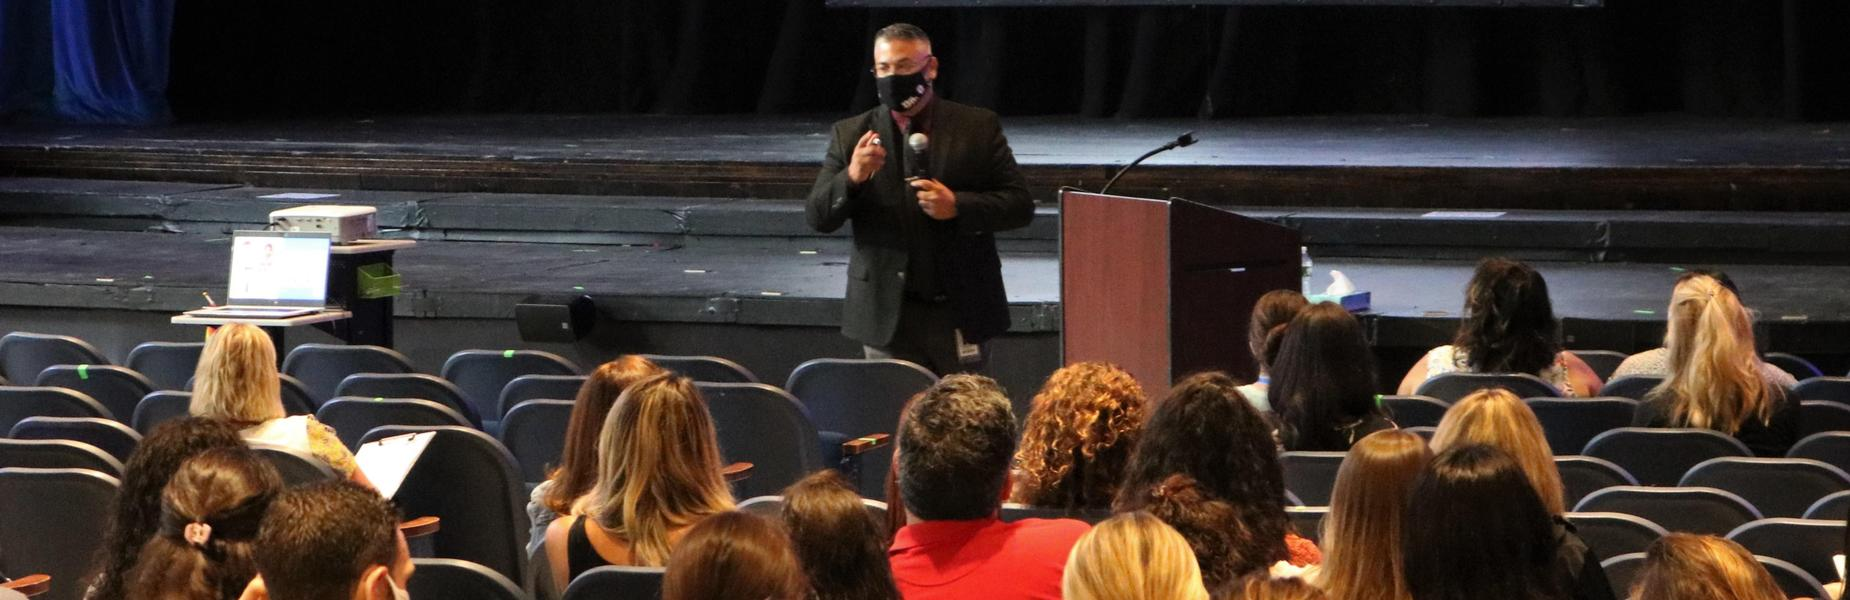 Westfield Superintendent of Schools Dr. Raymond González welcomes back staff during an opening day ceremony on Sept. 1.